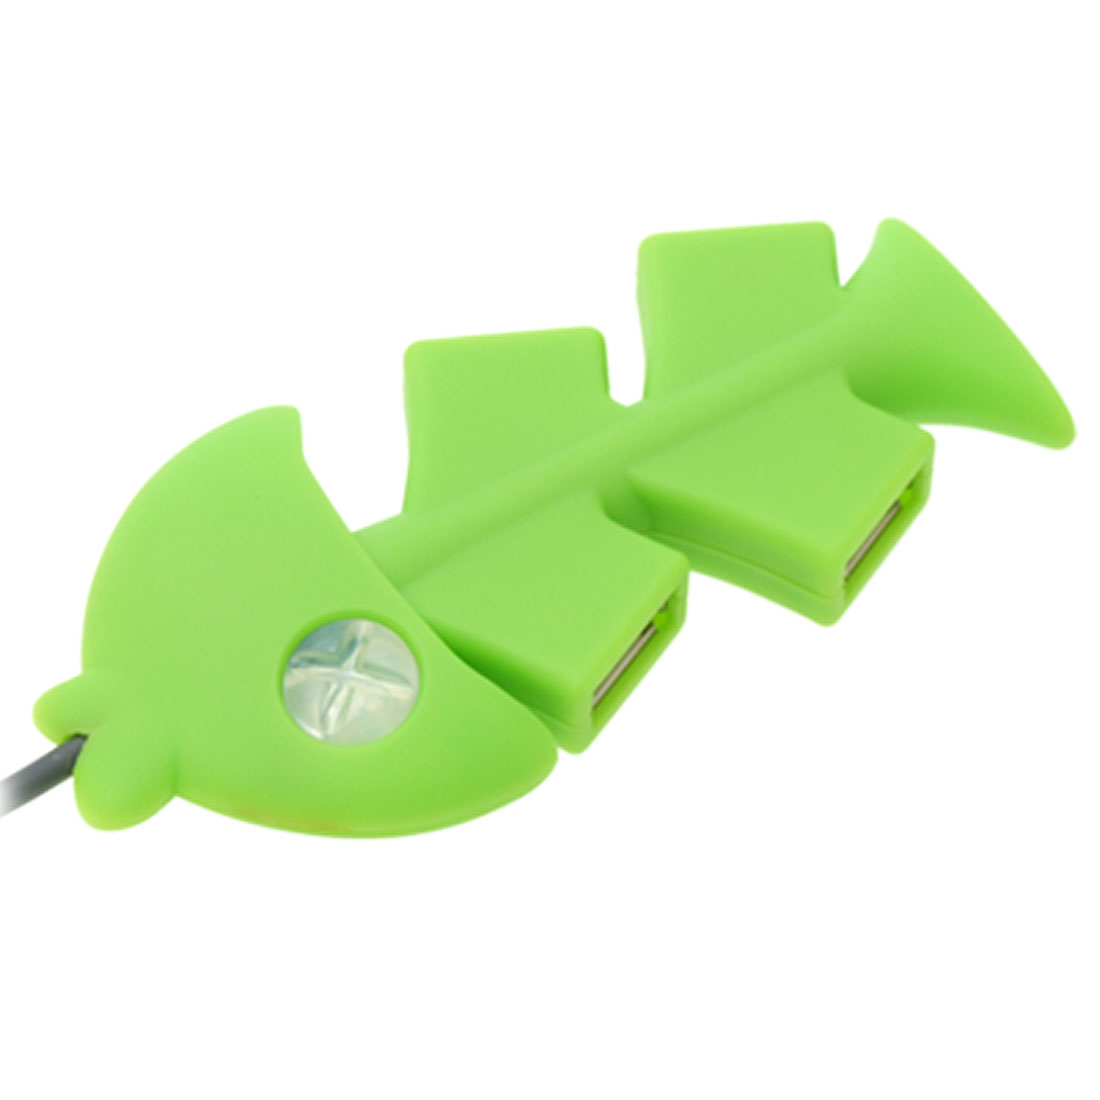 Green Fish Bone 4 Port USB 2.0 Hub for PC Computer